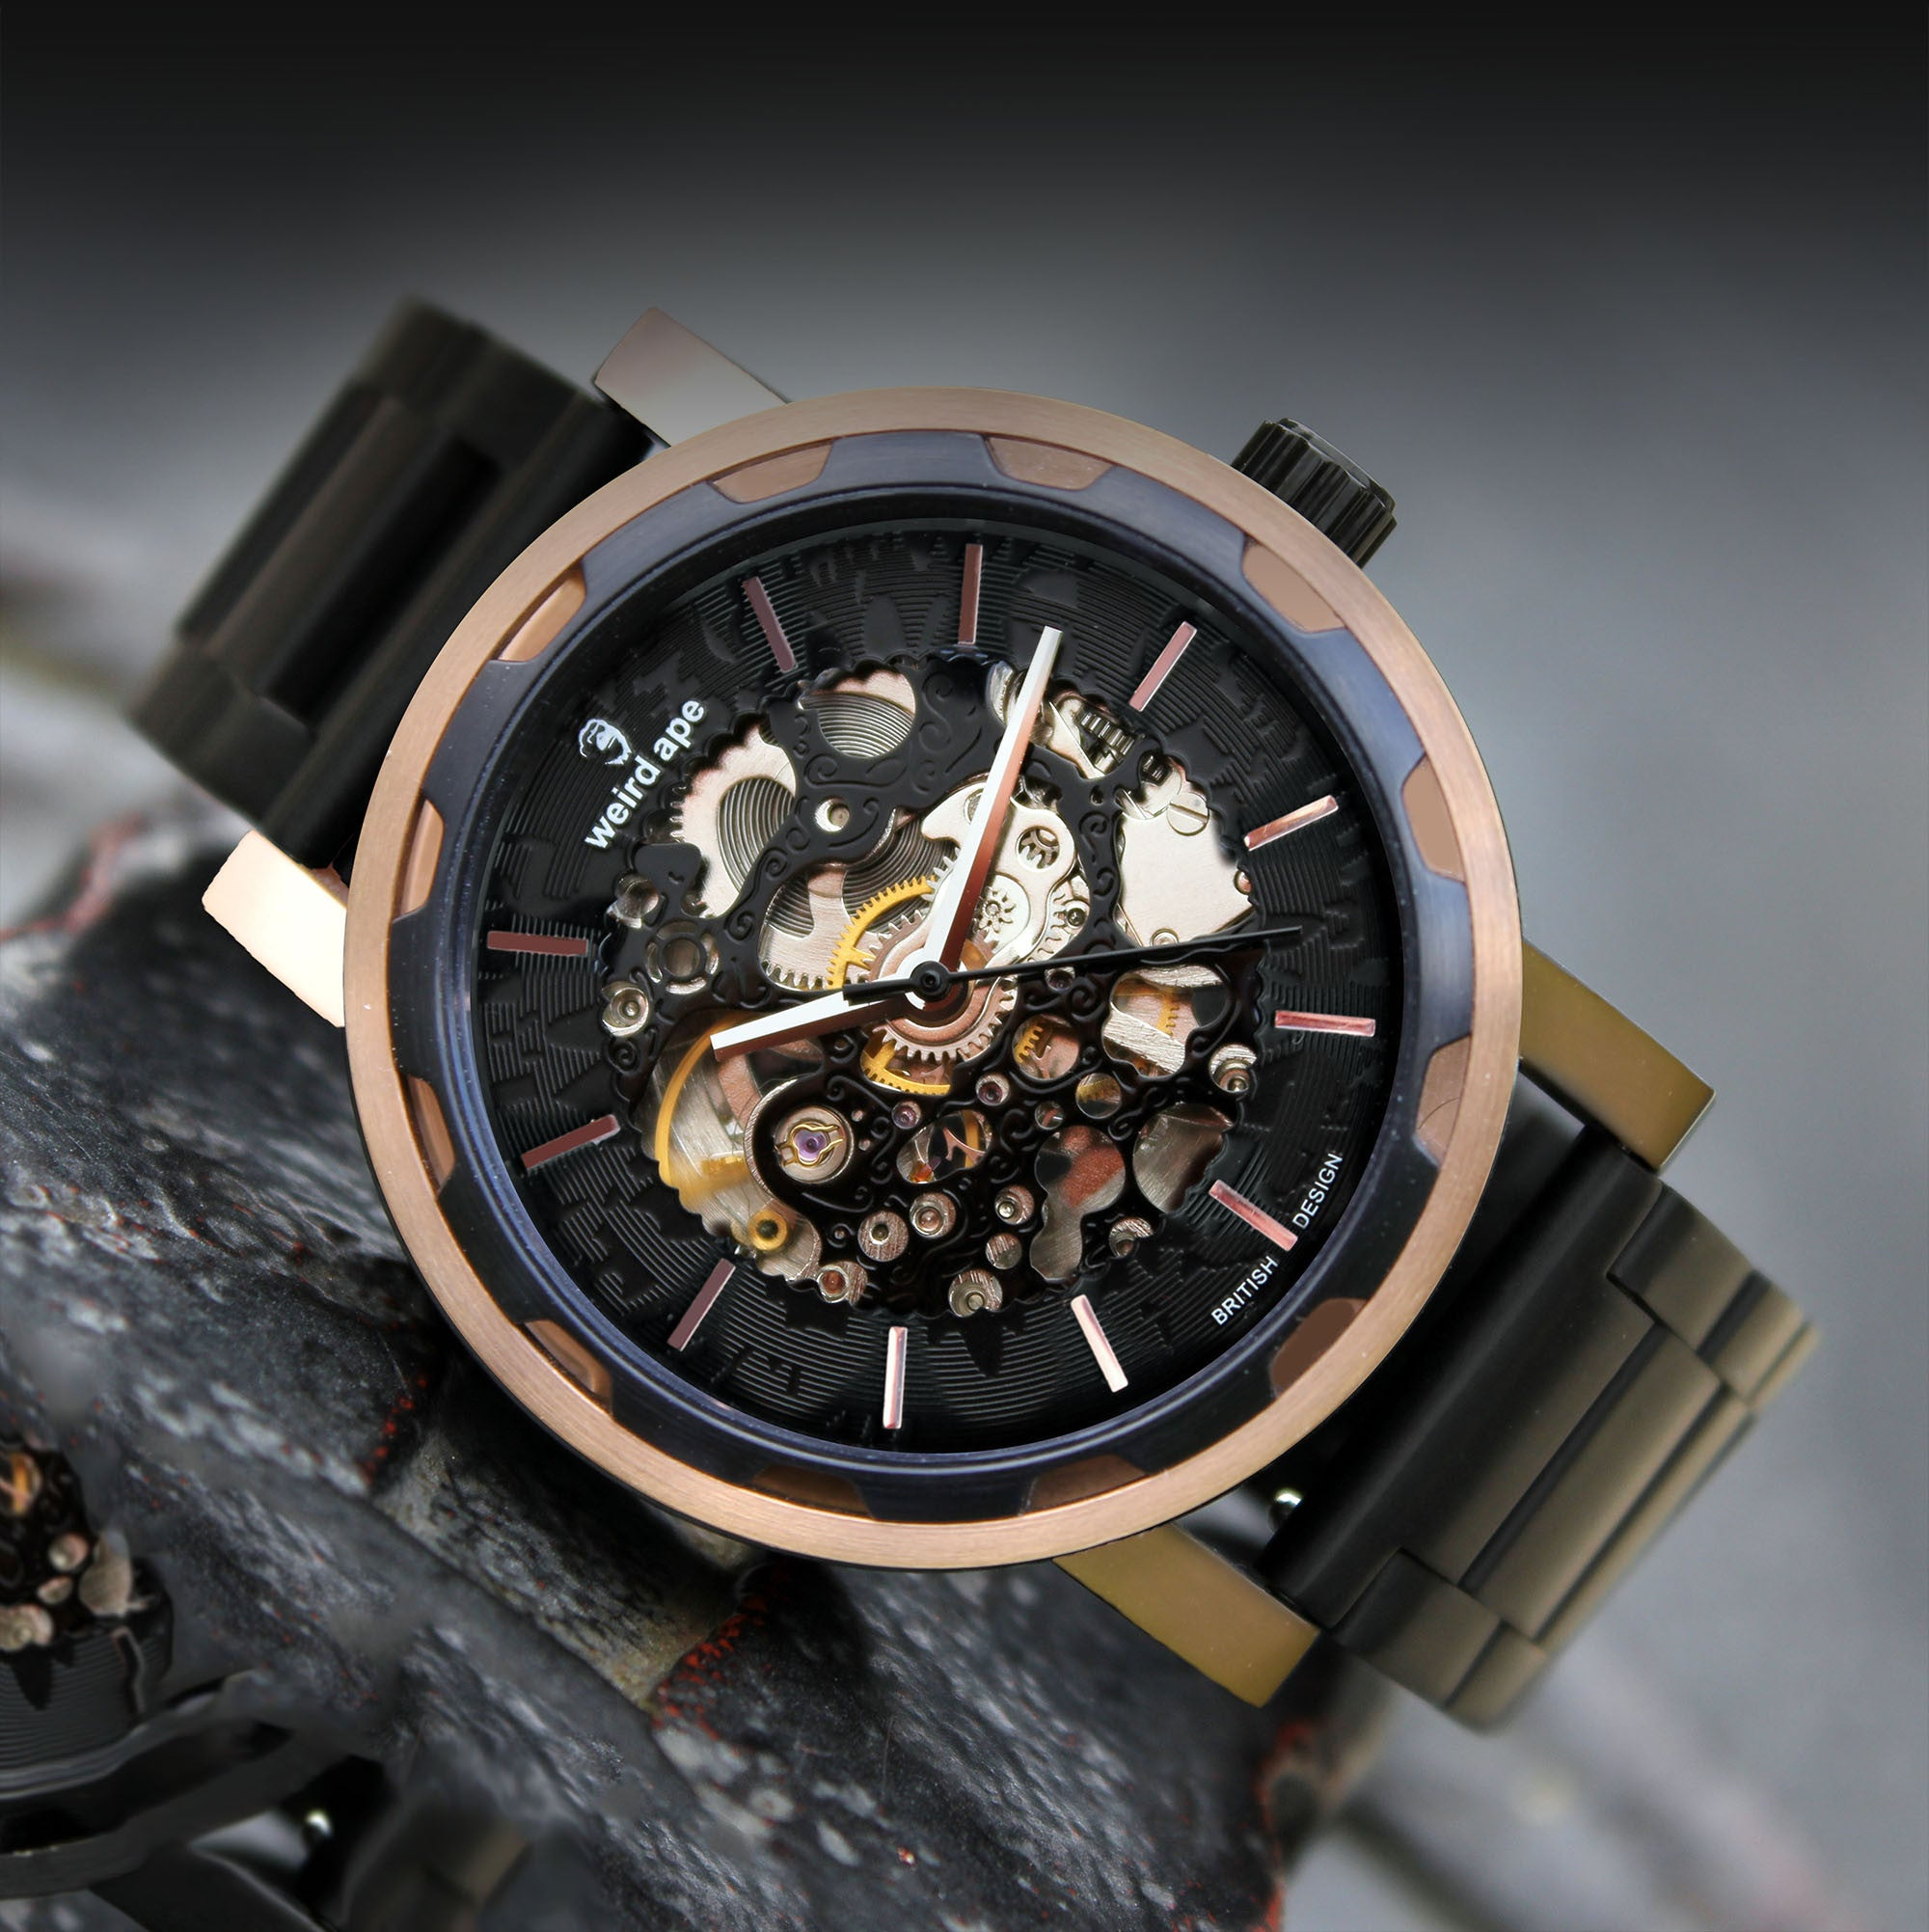 A picture of a rose gold mechanical watch with a black metal strap.